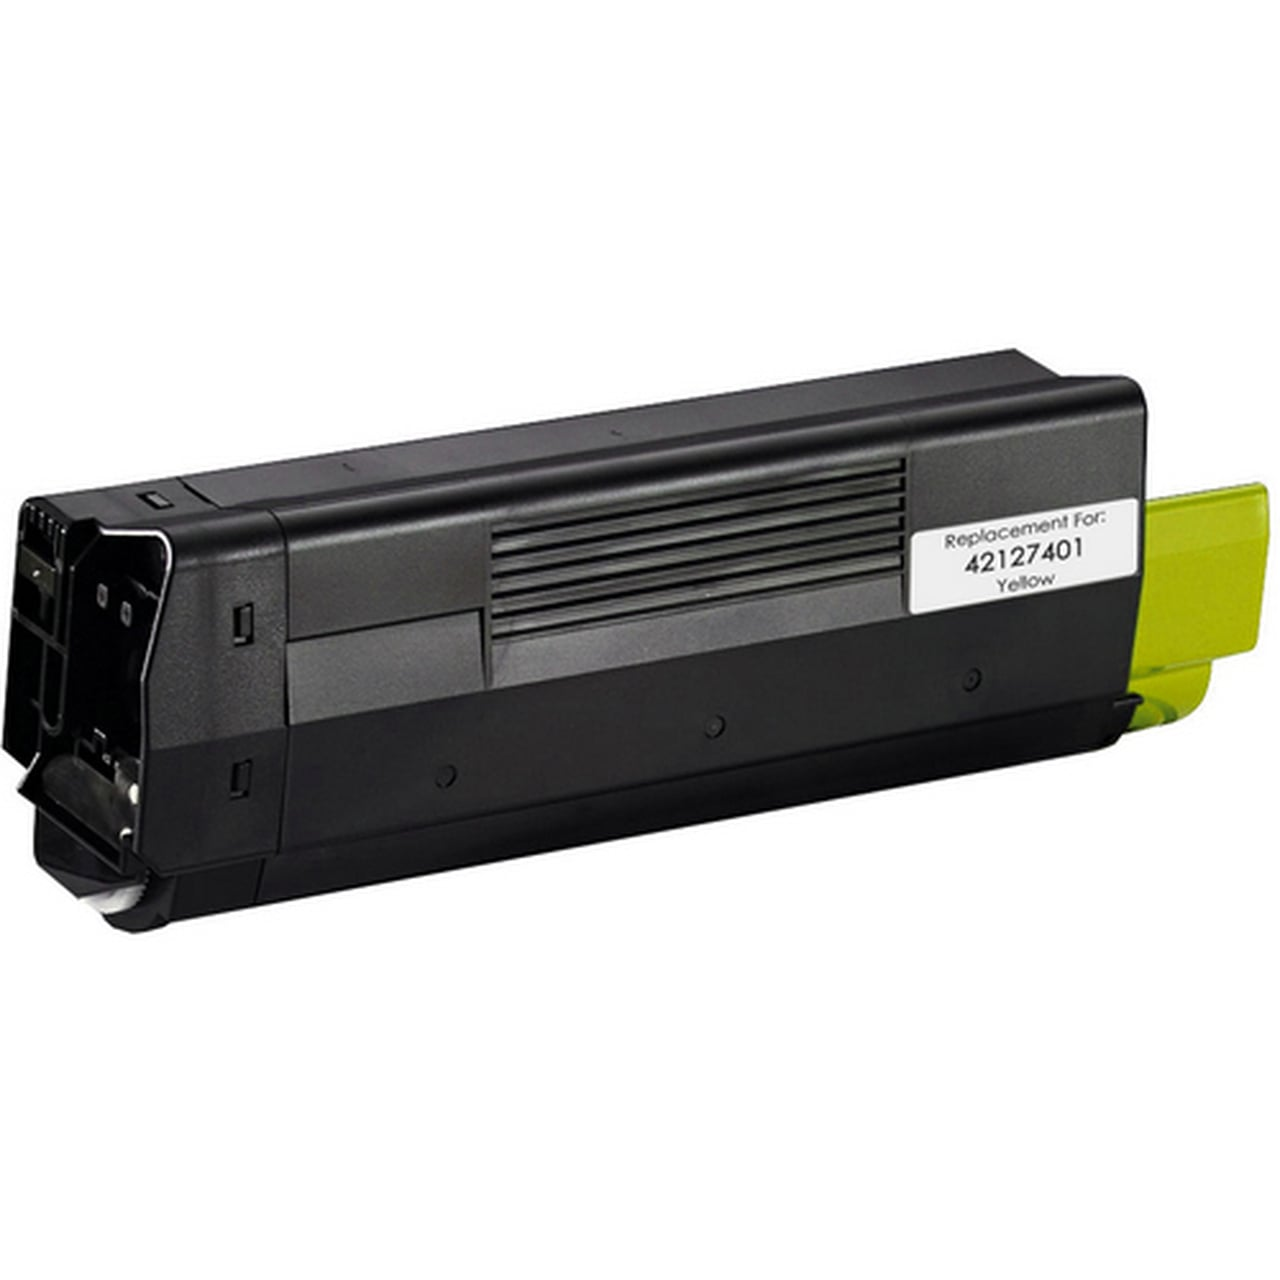 42127401 Toner Cartridge - Okidata Remanufactured  (Yellow)